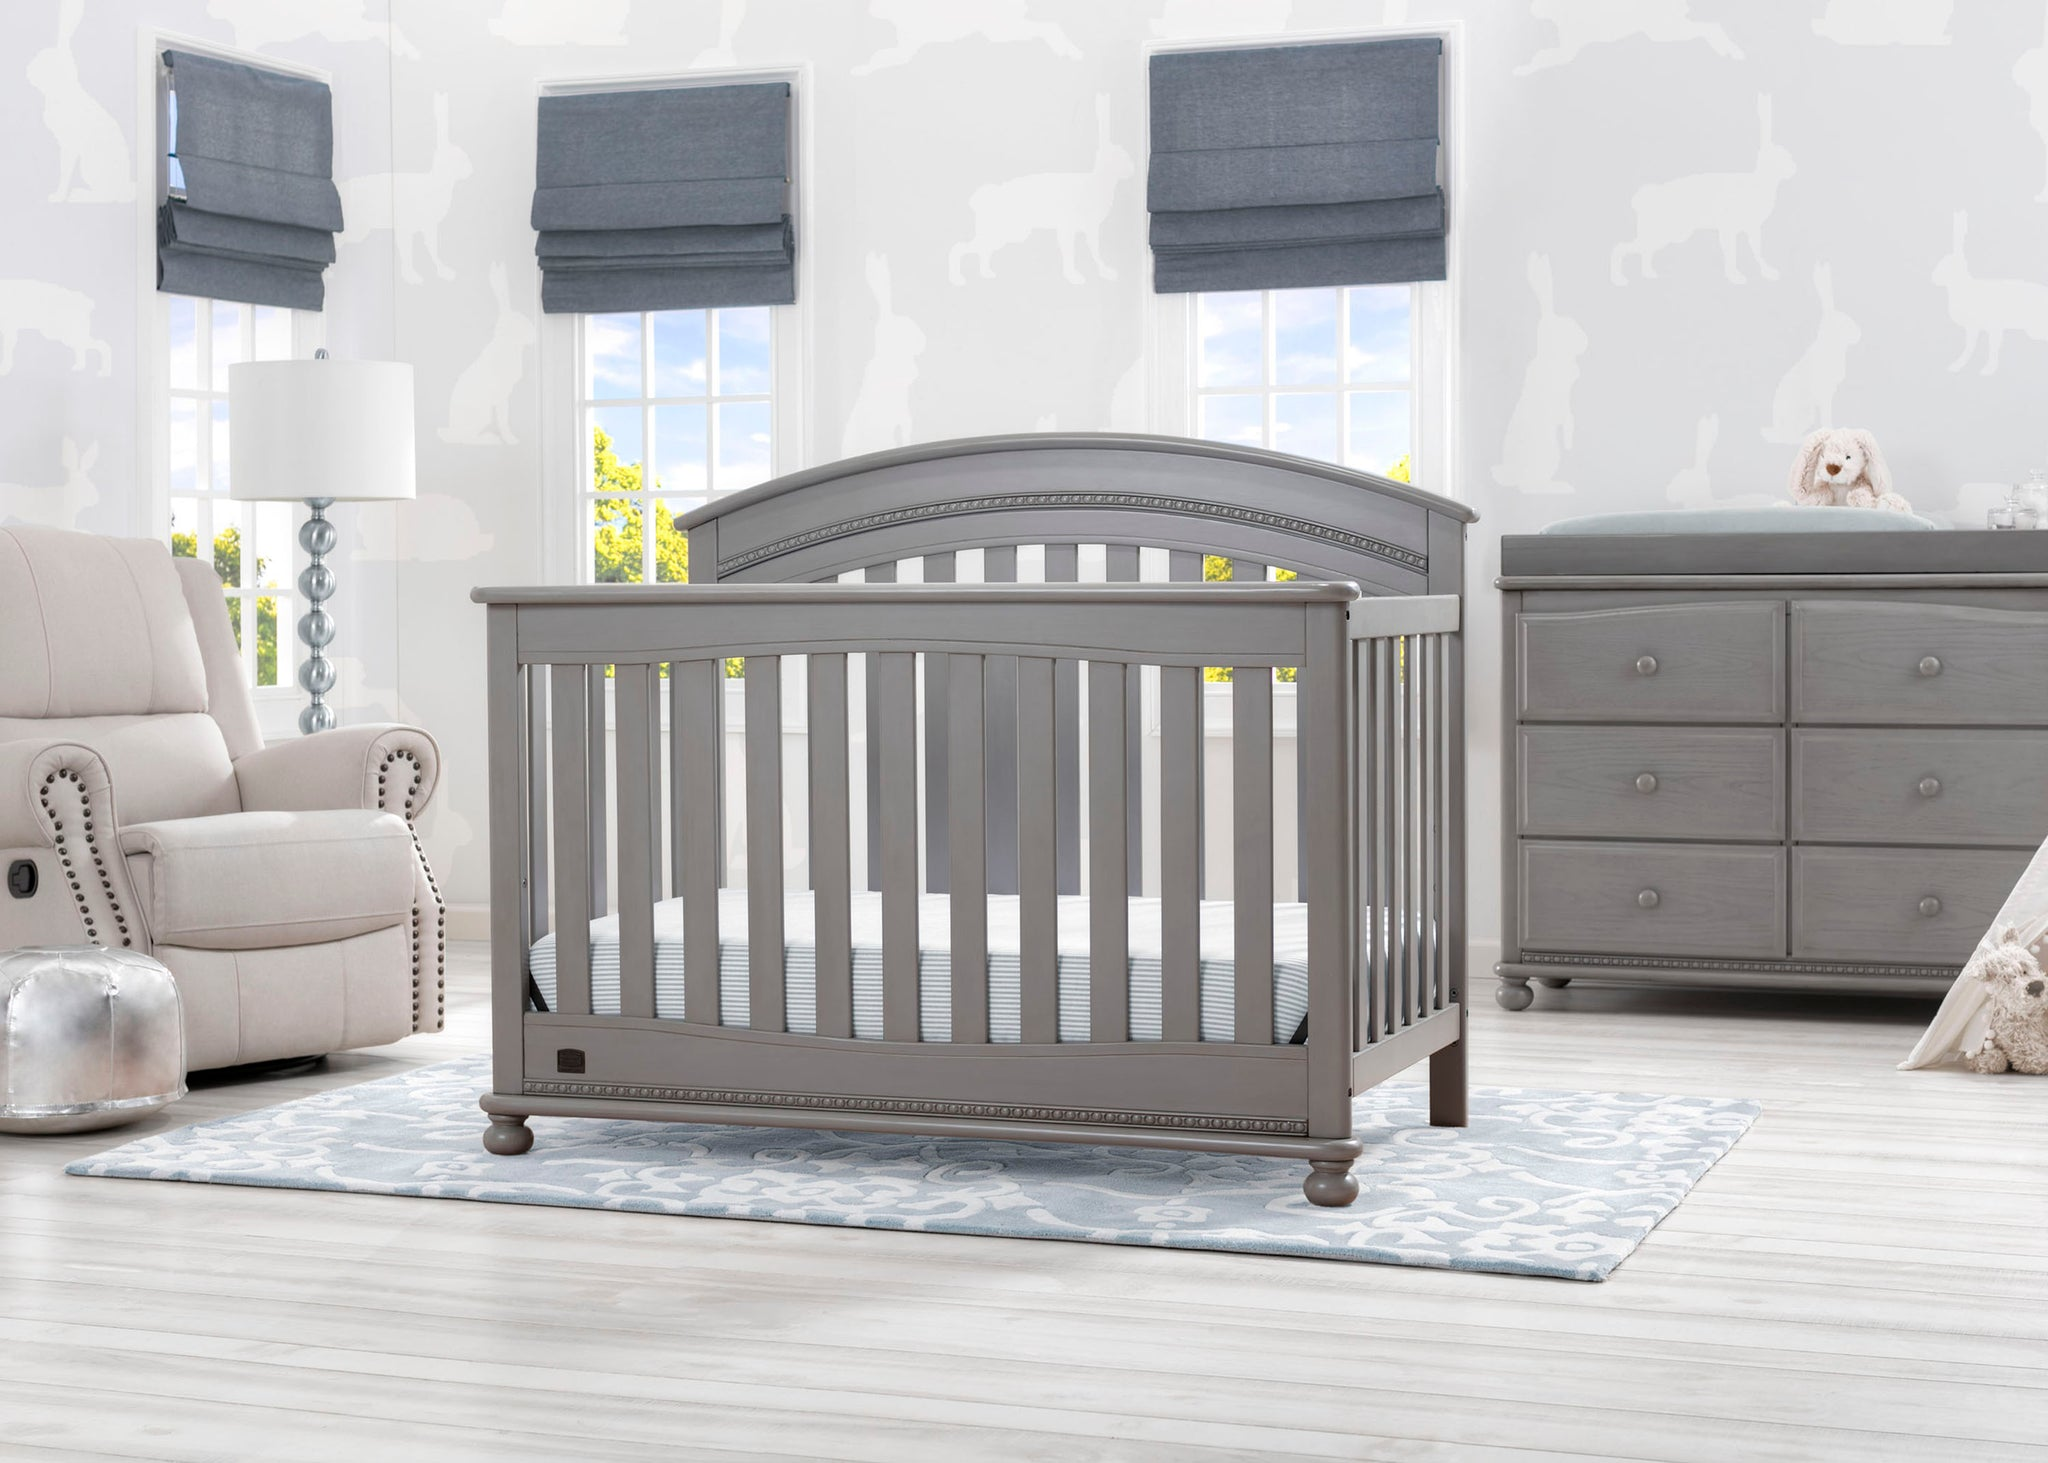 Delta Children Storm (161) Aden 4-in-1 Convertible Crib (W337550) Room View, b1b